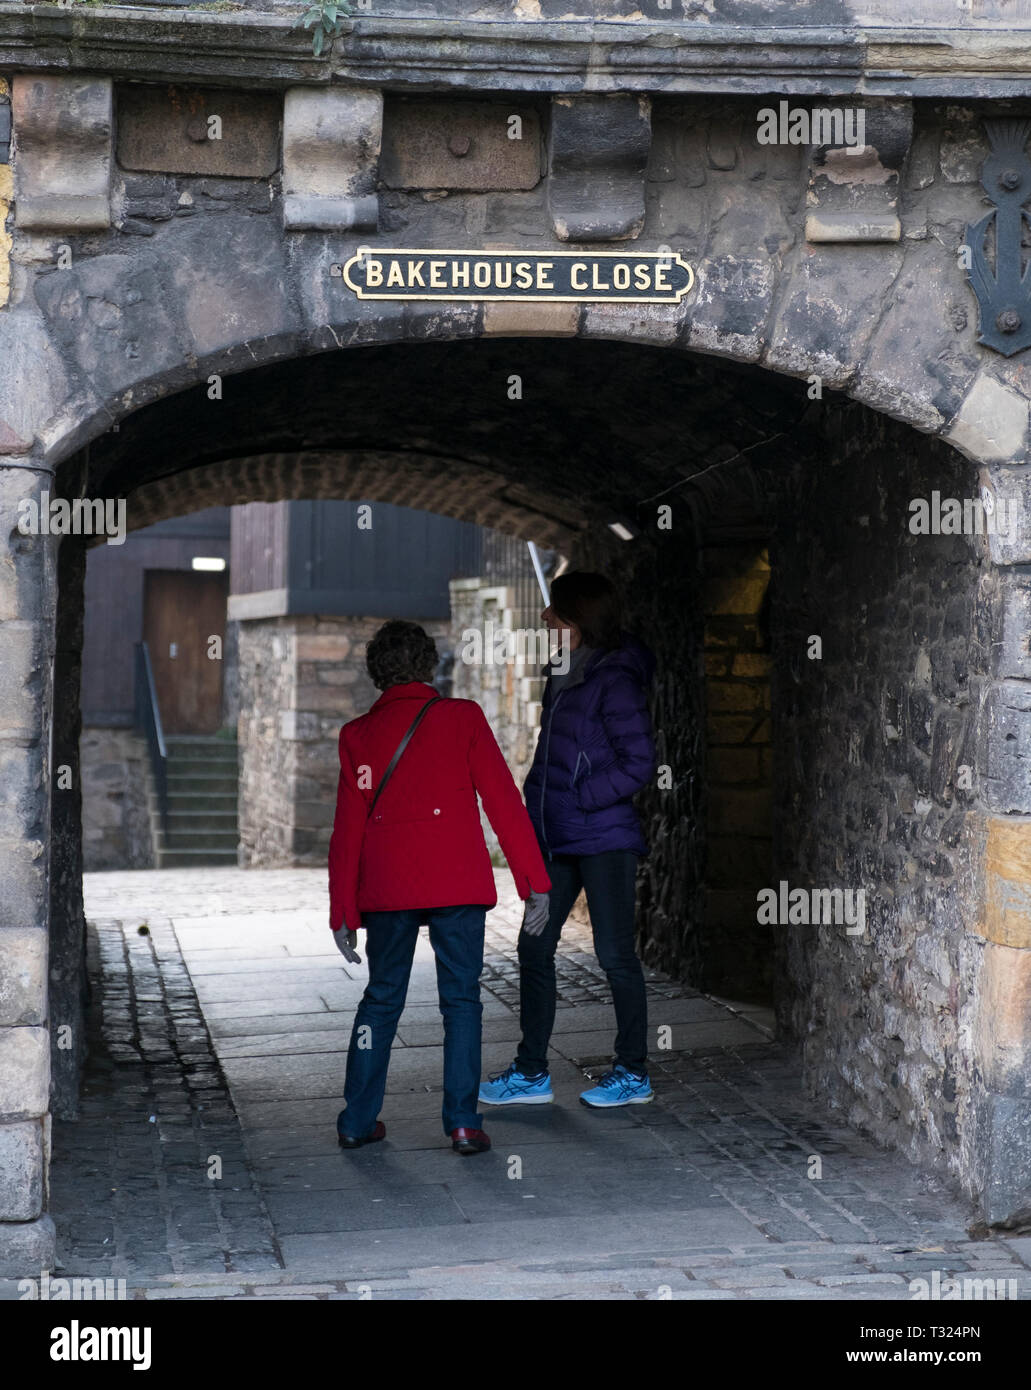 The entrance to Bakehouse Close in the Canongate, Edinburgh. - Stock Image